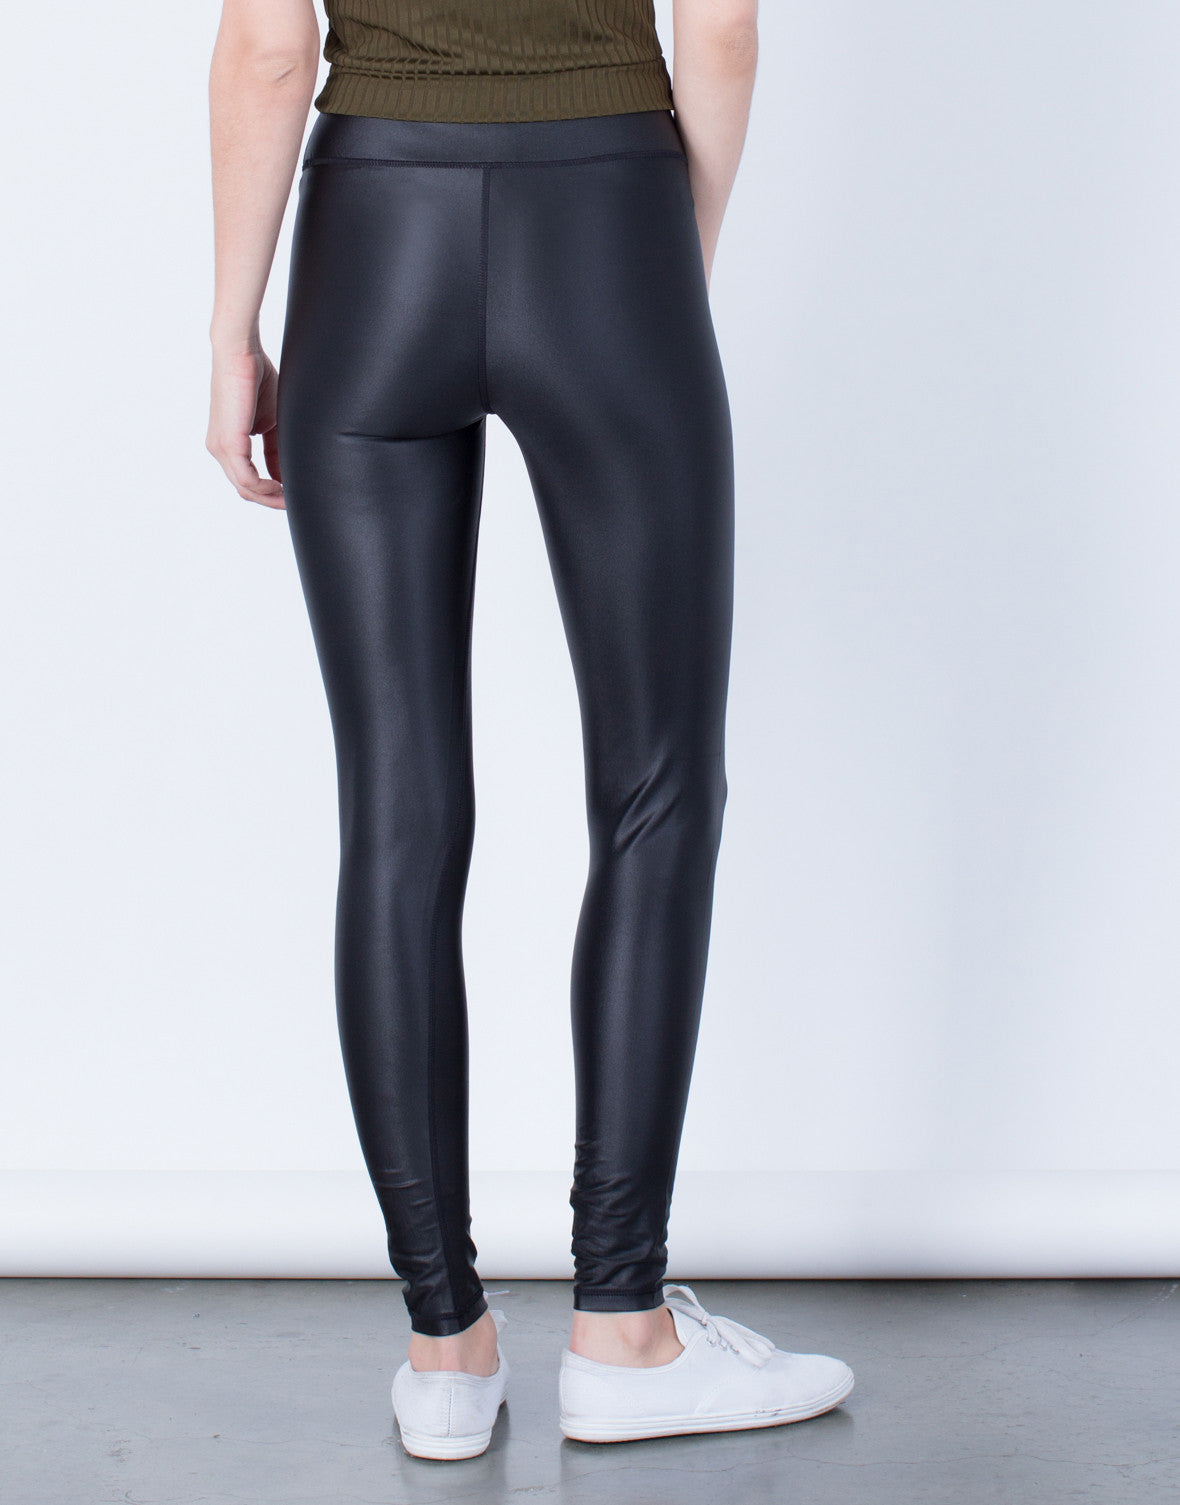 Back View of On the Move Leather Leggings